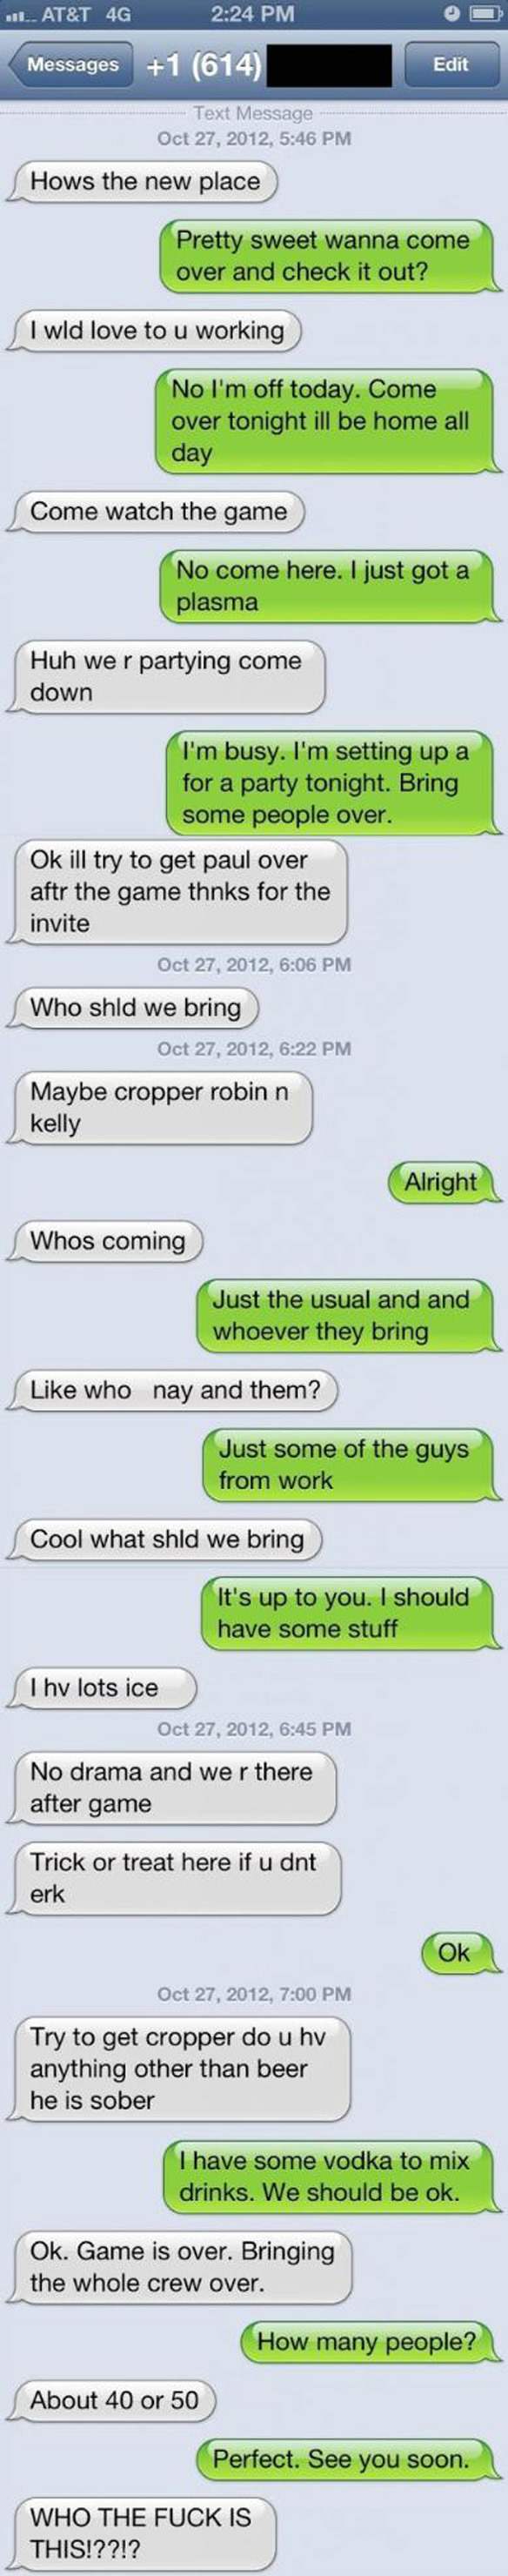 funny-wrong-number-texts-21